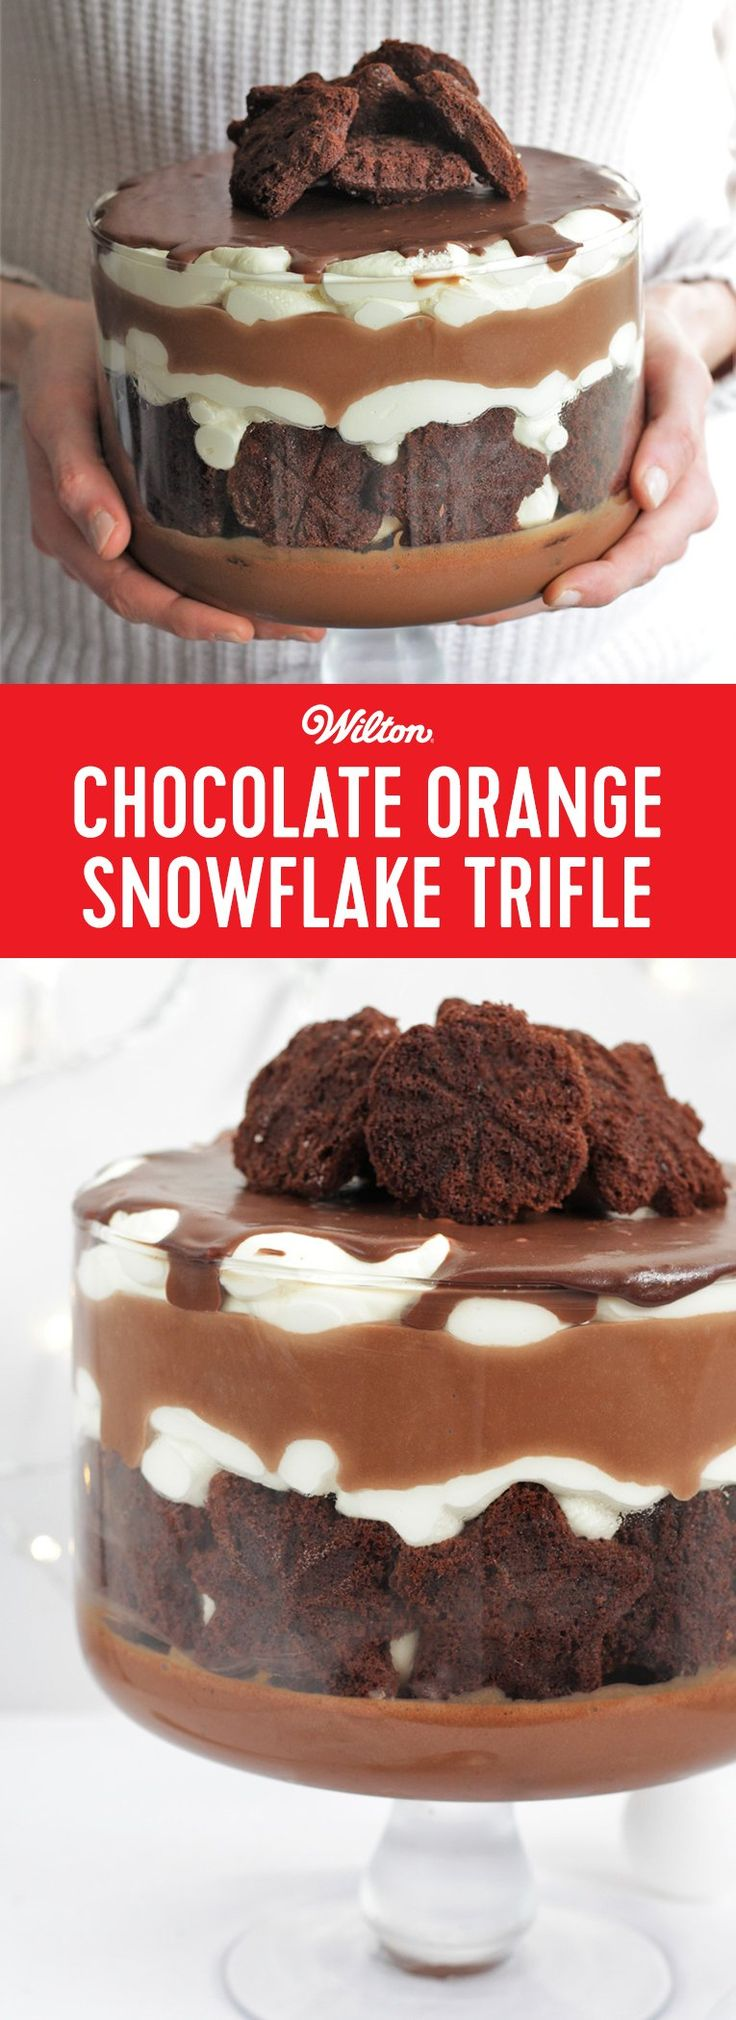 Chocolate Orange Snowflake Trifle Recipe - Two things that equal Christmas food are trifle and Chocolate Oranges. Why not combine the two in a decadent trifle?! If you don't fancy the orange twist, just use milk chocolate. This is super easy to make, but big on impact and everyone will love to eat it. This is an easy recipe that's great for a beginner baker. #christmas #trifles #chocolate #wiltoncakes